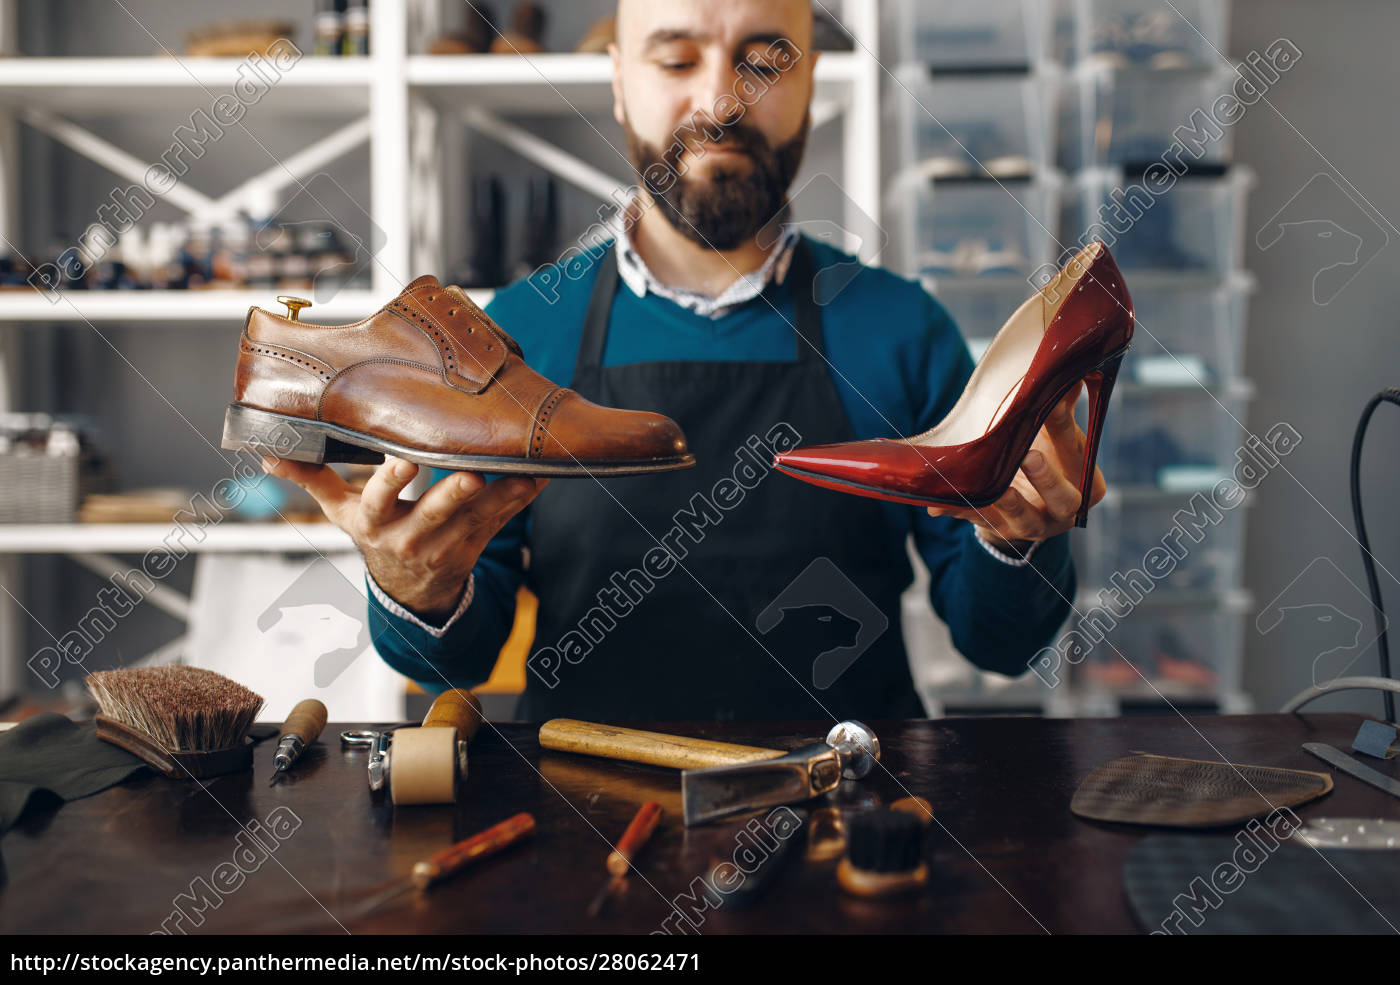 bootmaker, shows, repaired, shoes, , footwear, repair - 28062471